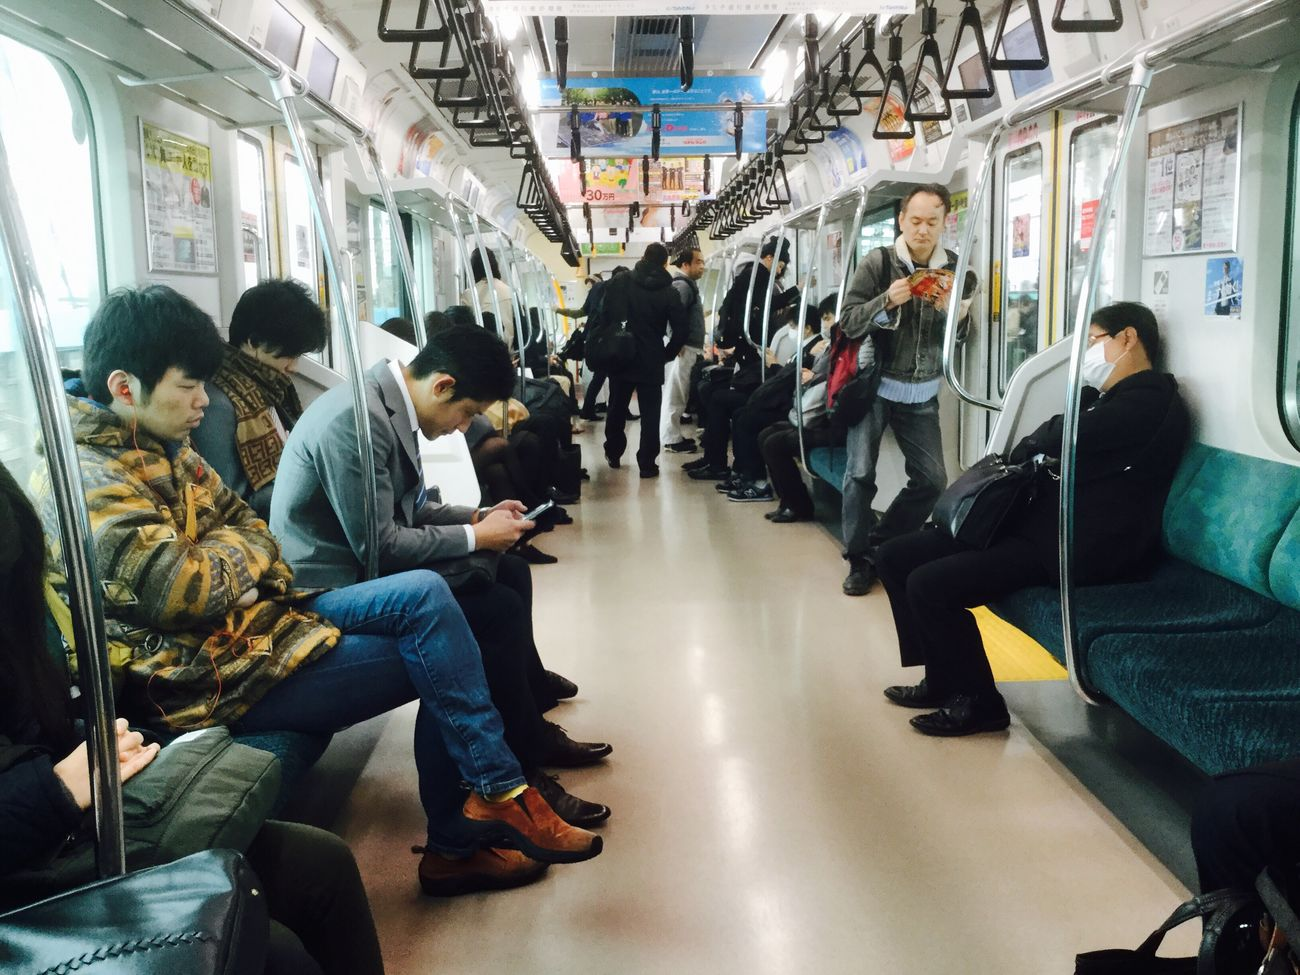 Public Transportation Commuter Subway Train Transportation Train - Vehicle Travel Vehicle Interior Passenger Men Mode Of Transport Commuter Train Train Interior Group Of People Adults Only